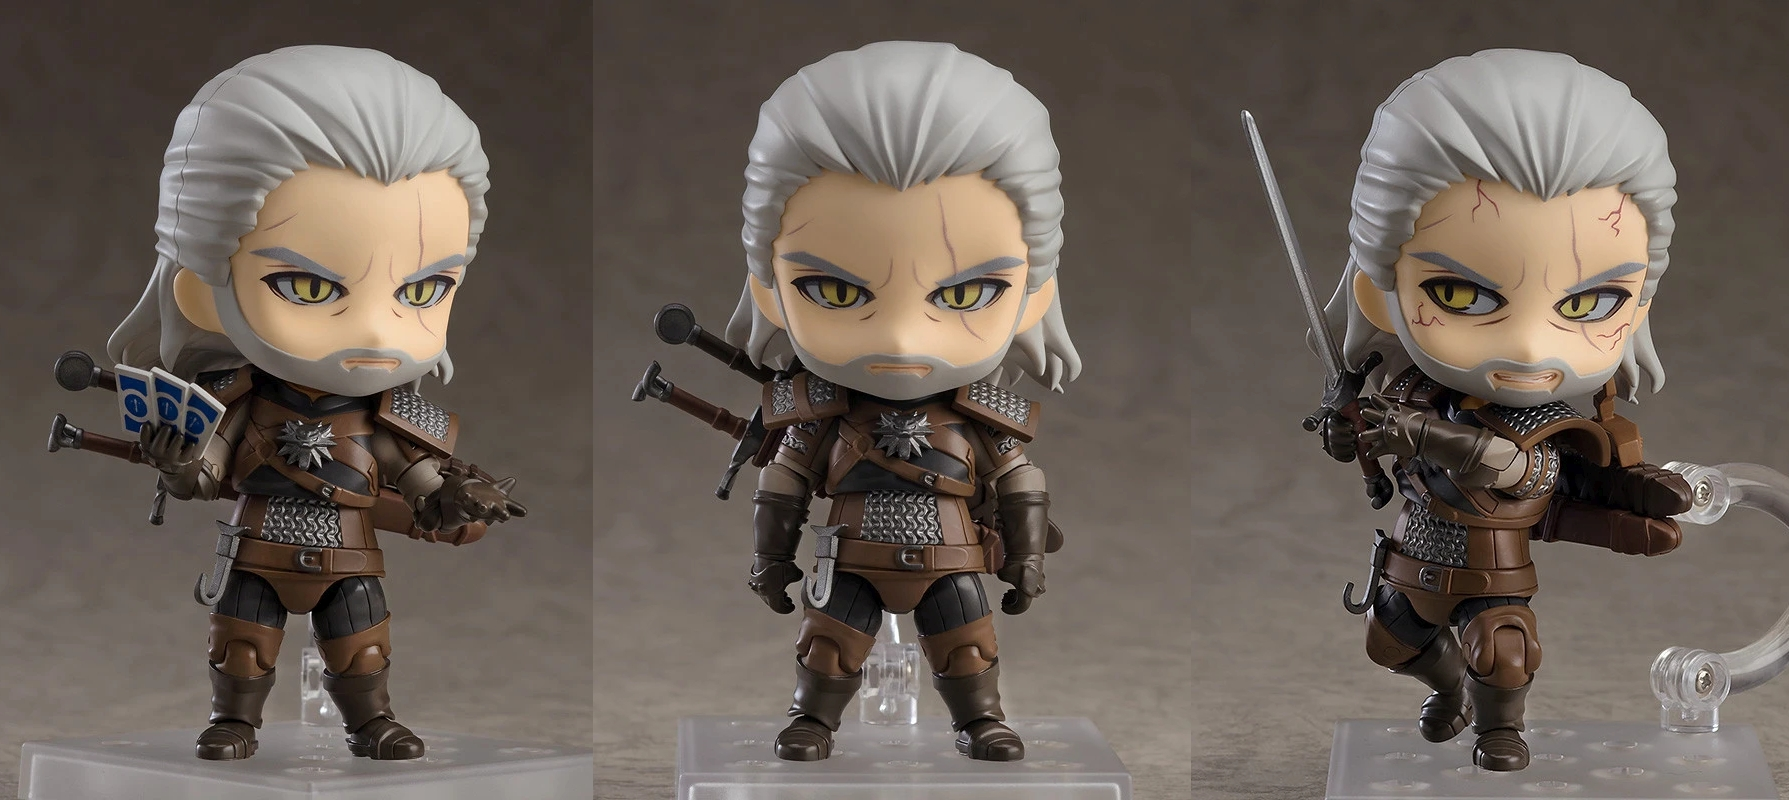 Good Smile Company Announces Re-Release Of The Witcher Geralt Of Rivia Nendoroid